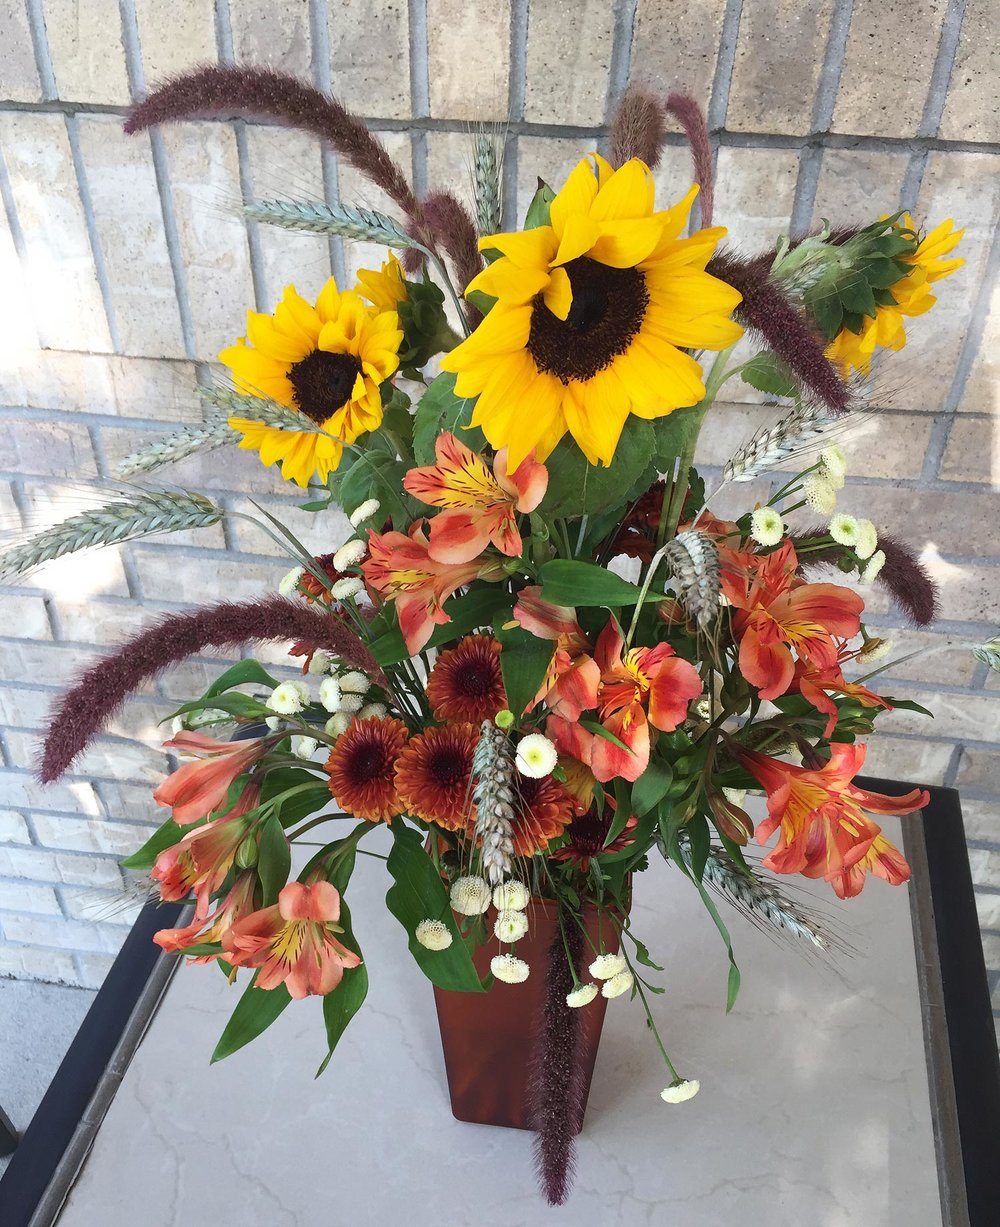 tall centerpiece or accent arrangement for fall event - fresh flowers and grasses